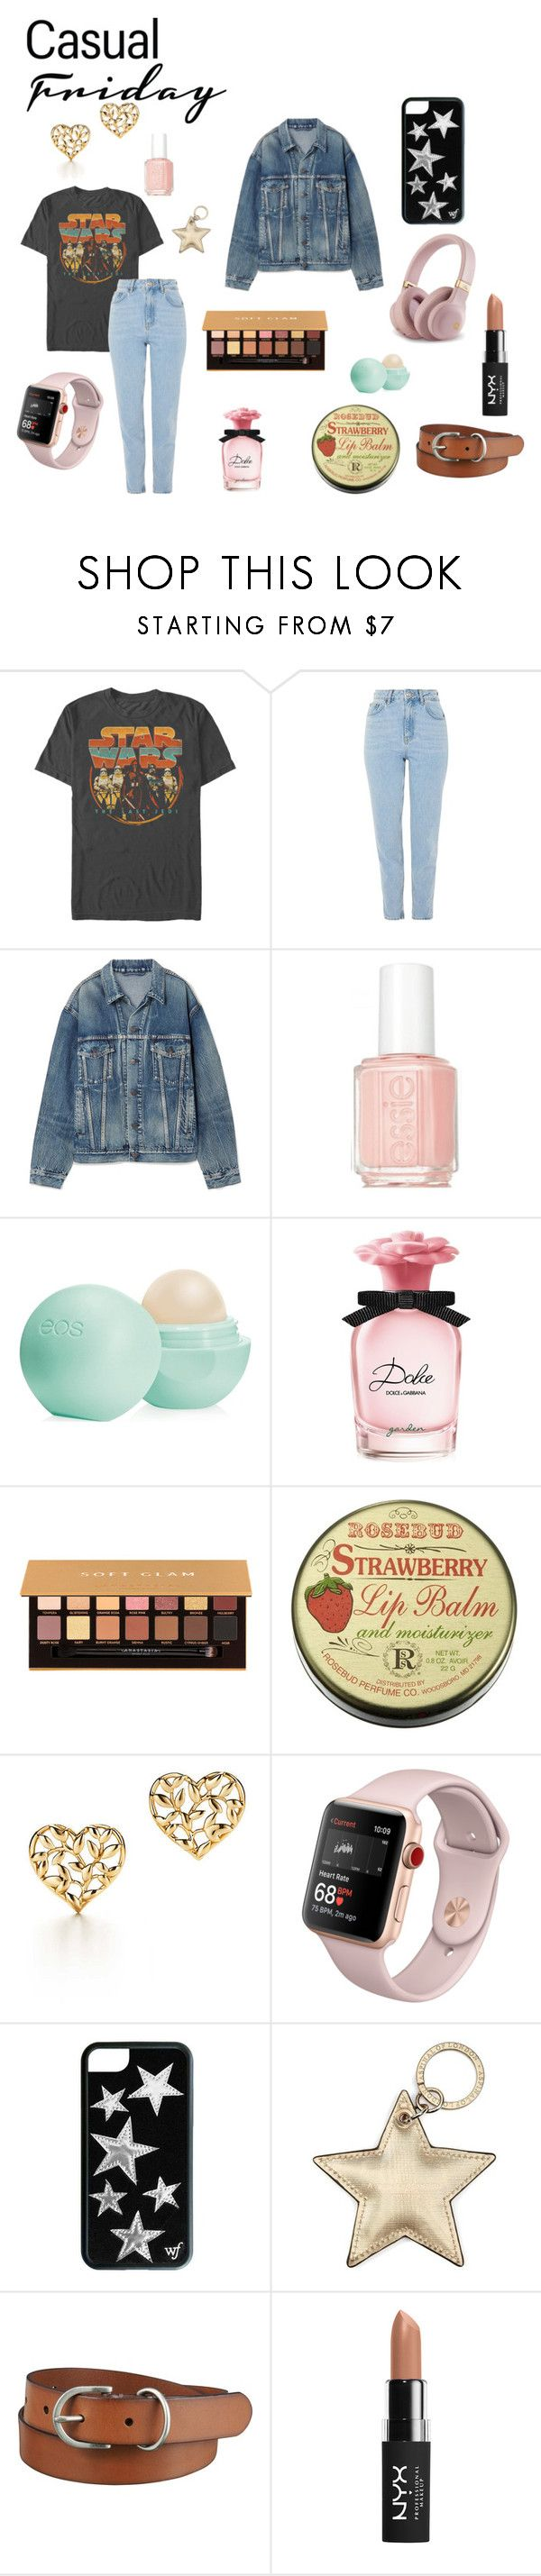 """""""casual friday"""" by thatgirlwithapiano ❤ liked on Polyvore featuring Topshop, Balenciaga, Essie, Eos, Dolce&Gabbana, Anastasia Beverly Hills, Paloma Picasso, Aspinal of London, Uniqlo and NYX"""